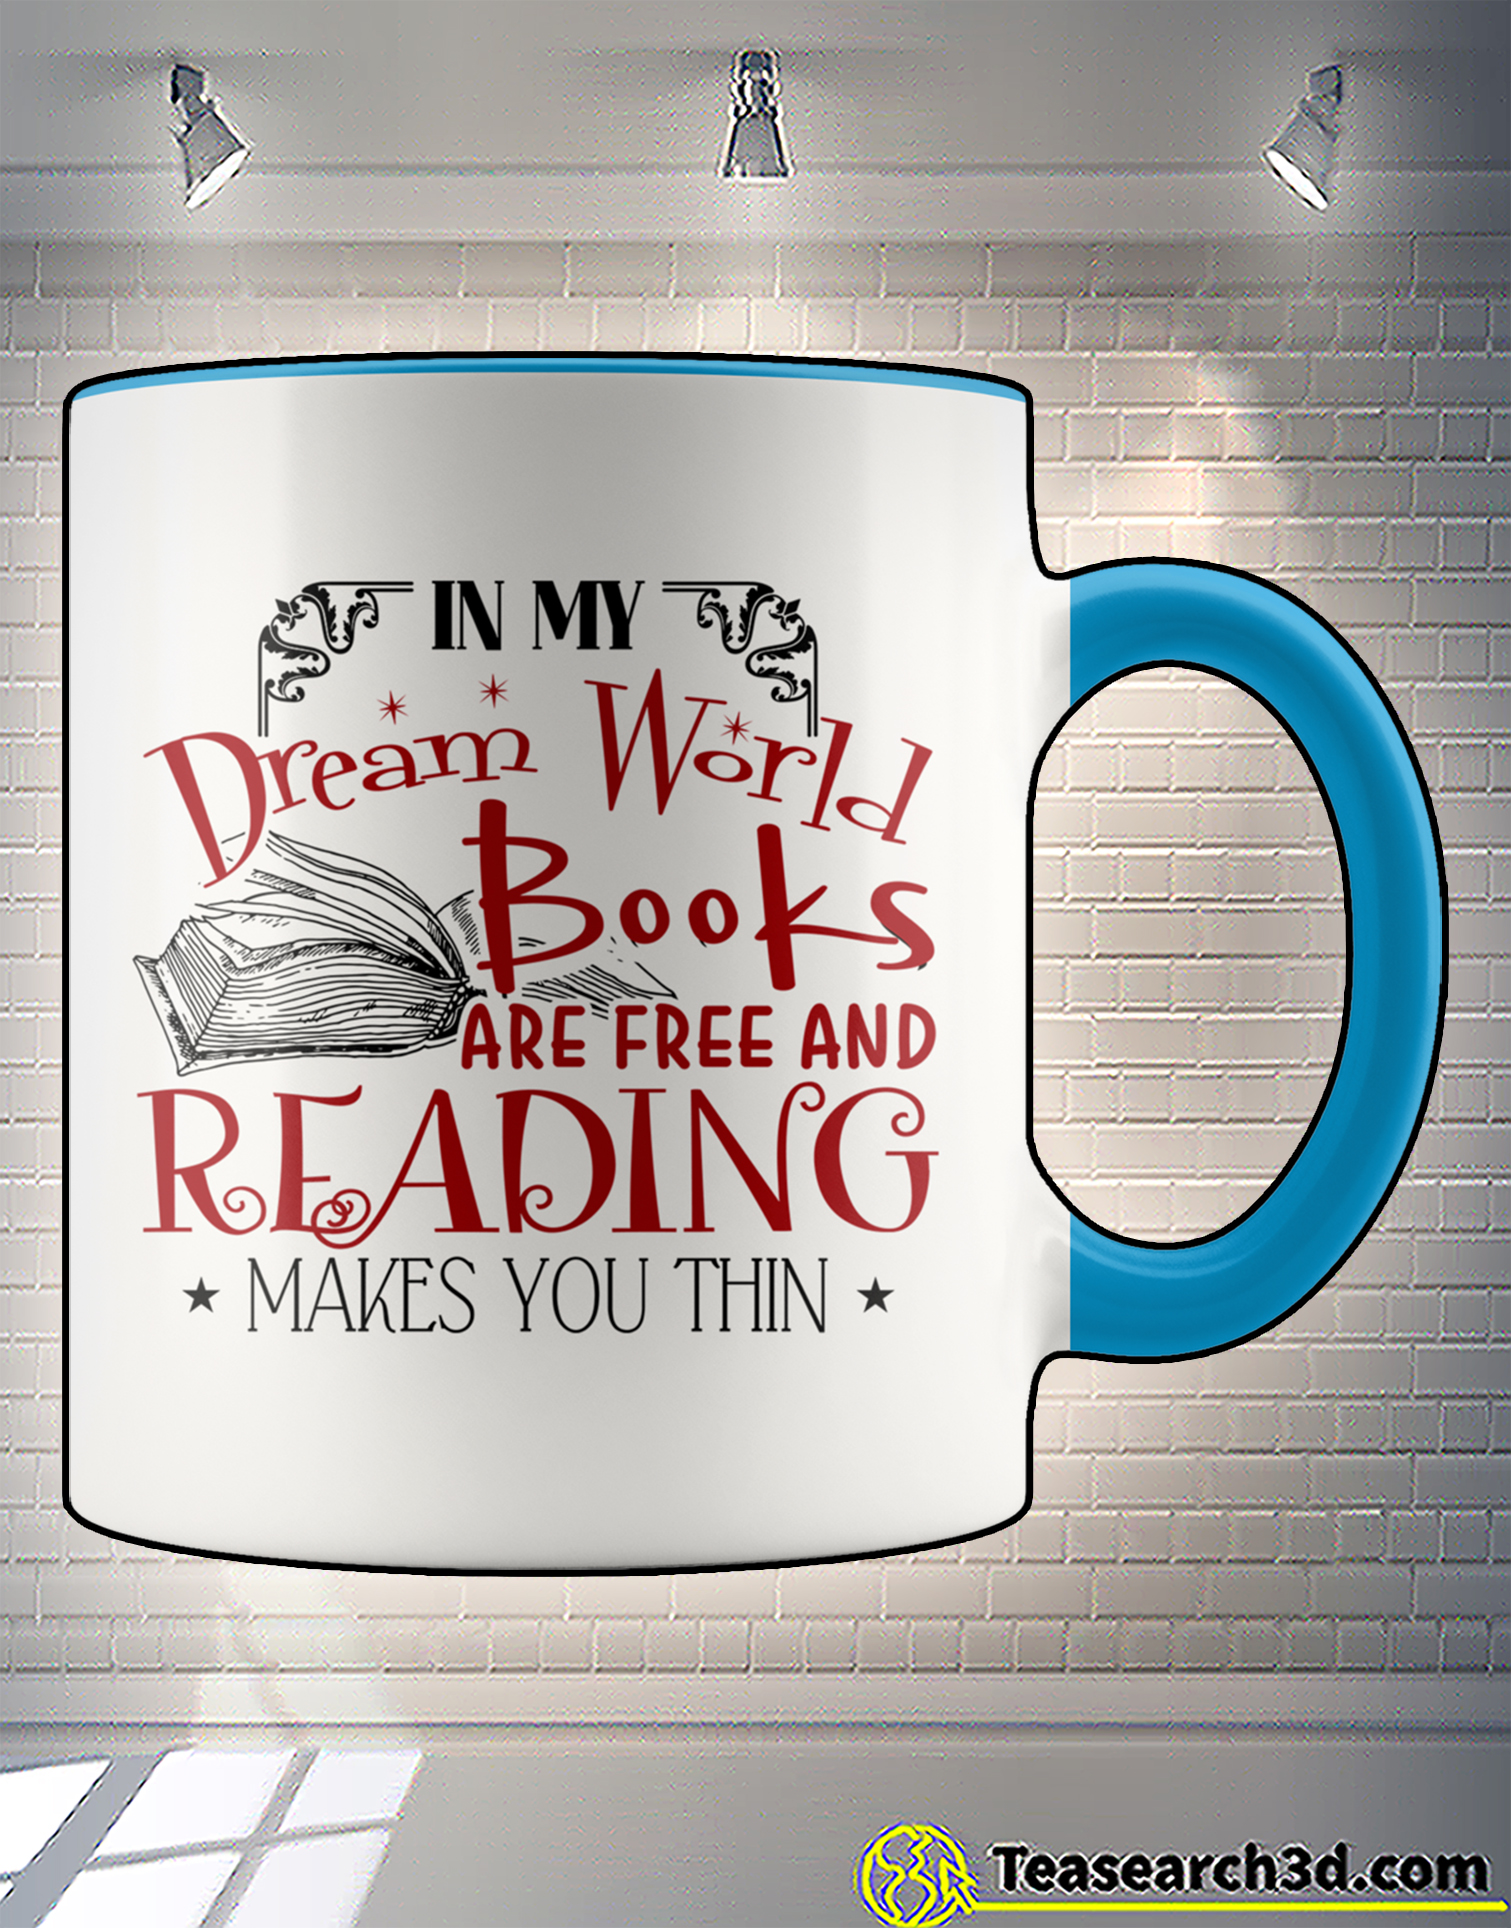 In my dream world books are free and reading makes you thin accent mug 1